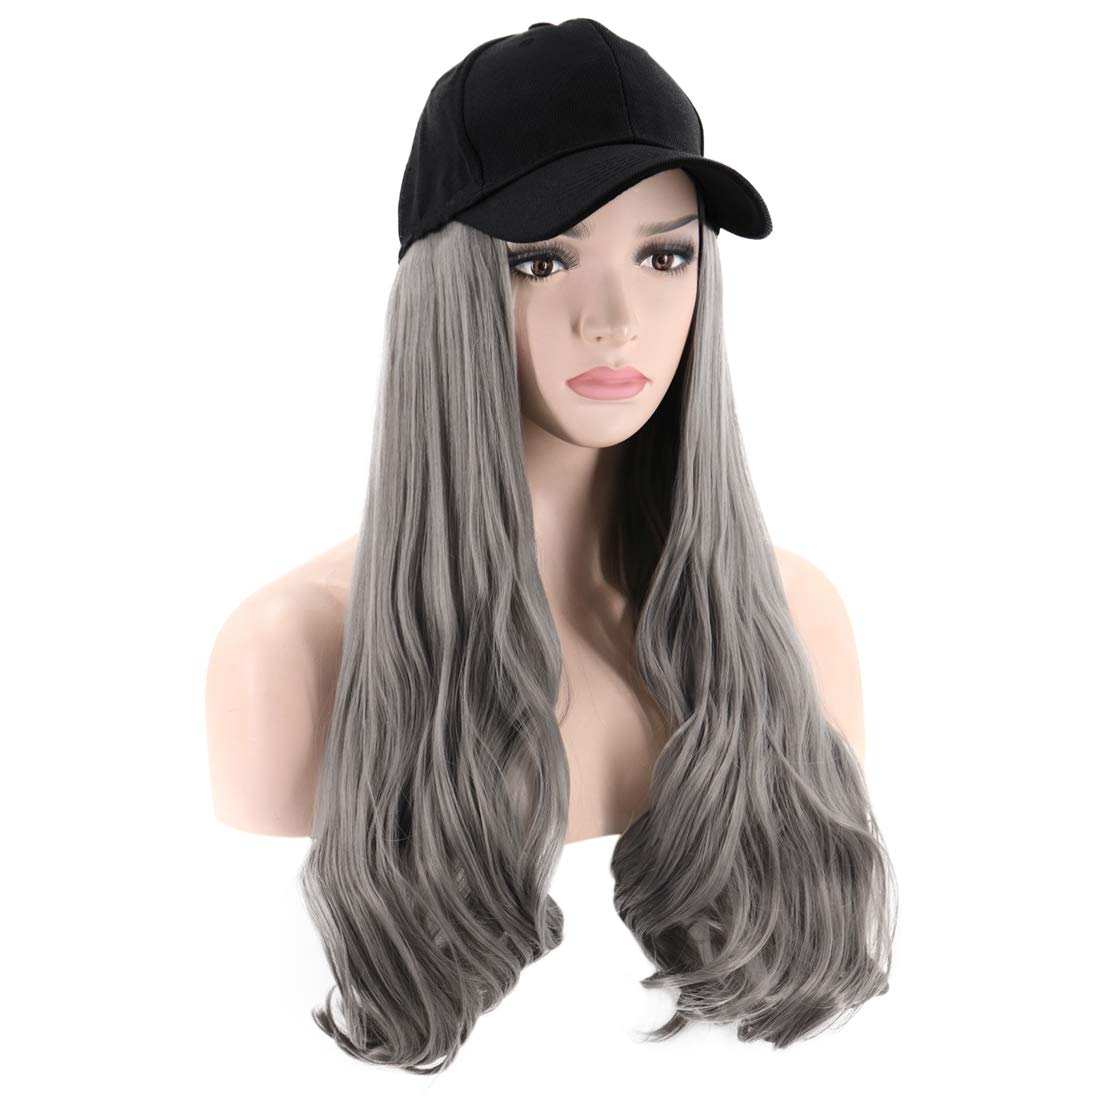 PATTNIUM Hat Wig for Women Max 40% OFF Ranking TOP6 Long with Hair Baseball Curly Cap